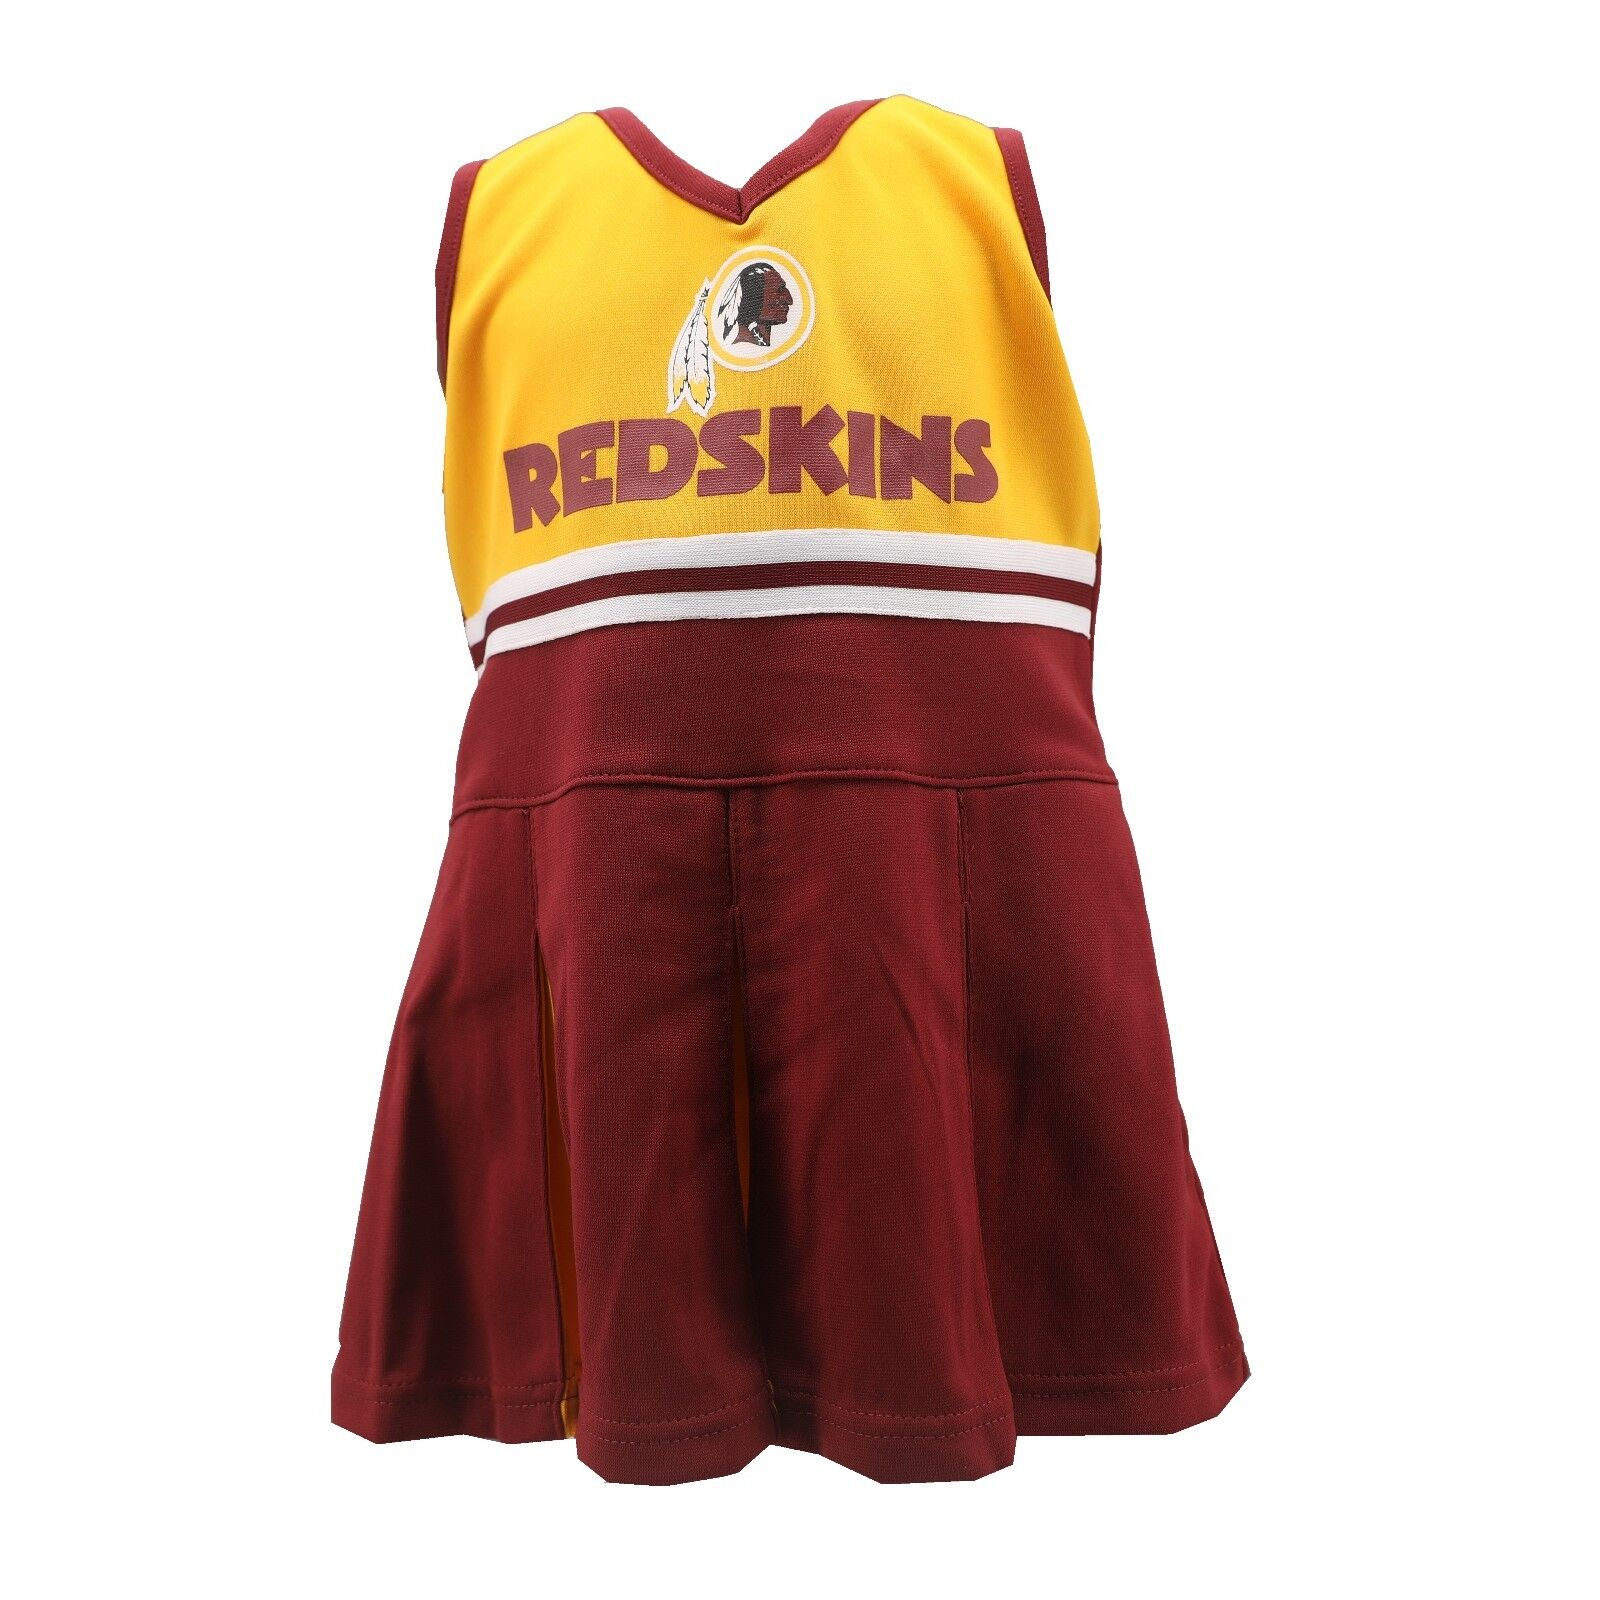 Details about Washington Redskins NFL Toddler Cheerleader Outfit with  Bottoms Combo Set New 726d88b0c